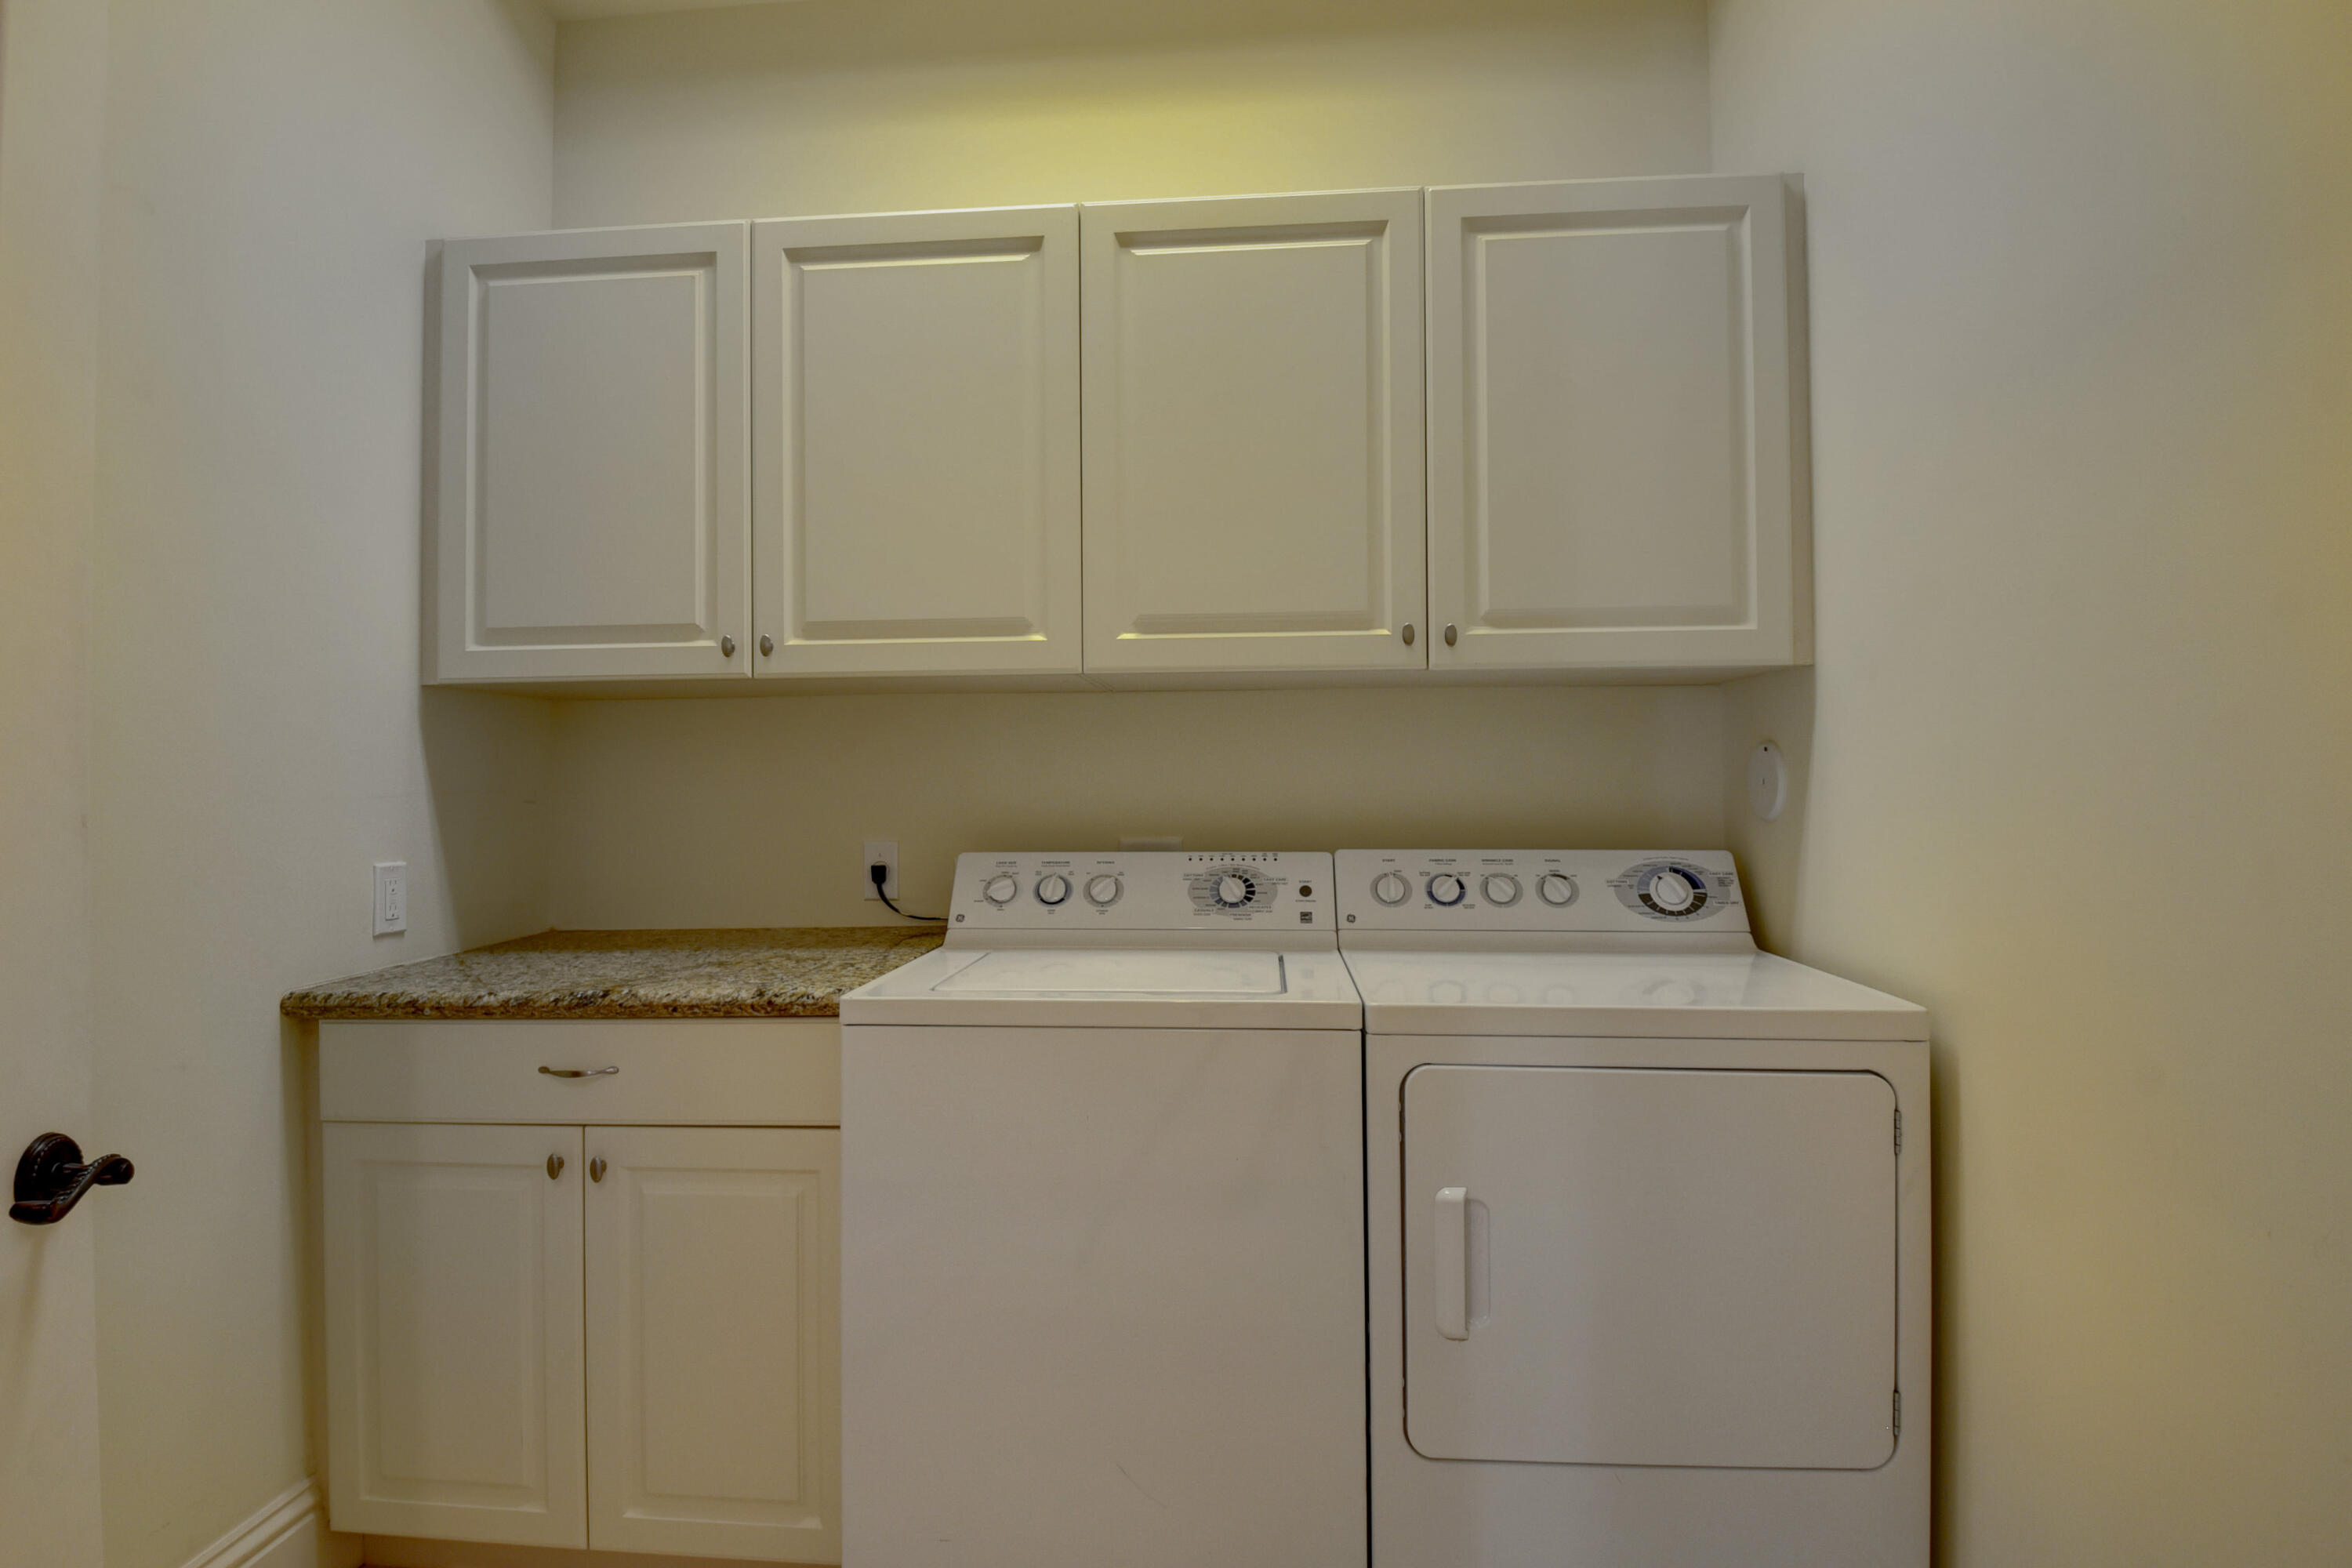 Pic - Laundry Room2